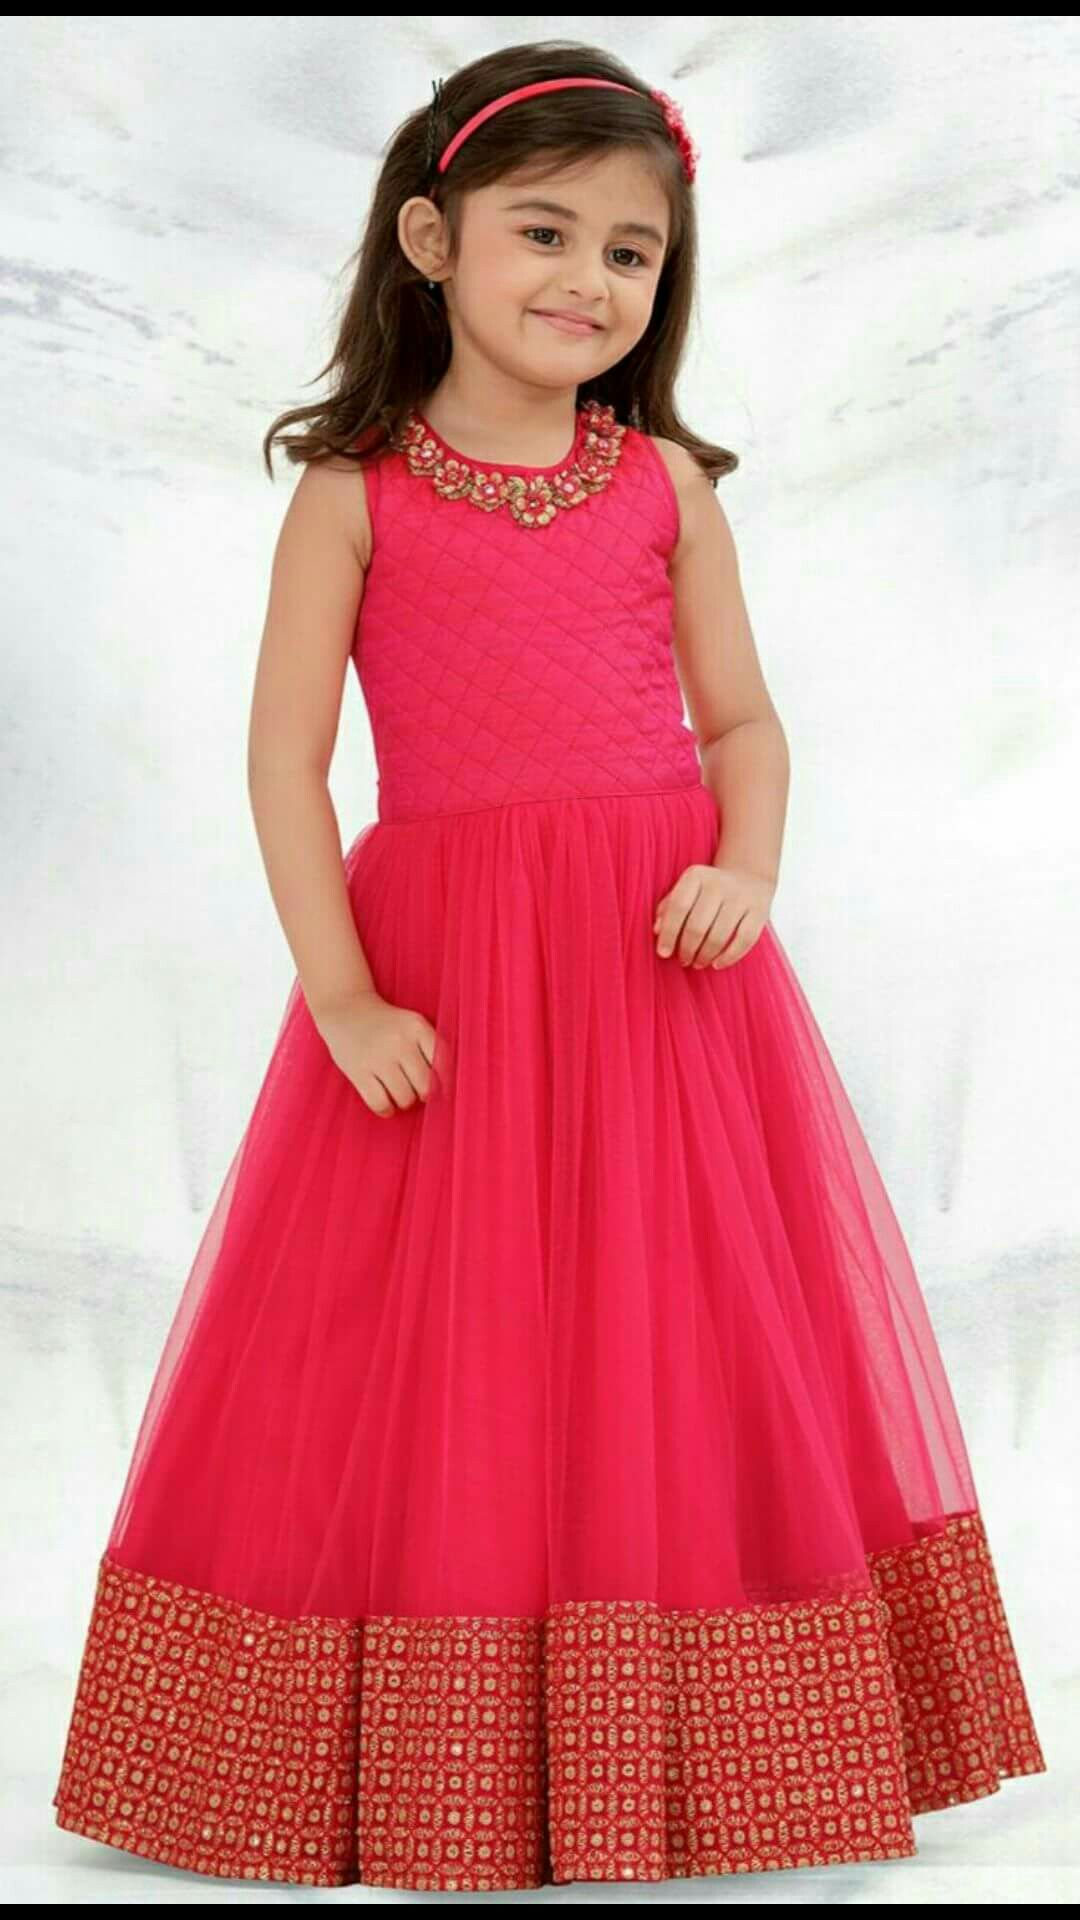 0660ef12f46f5 Frocks | frocks in 2019 | Kids party wear dresses, Kids frocks ...